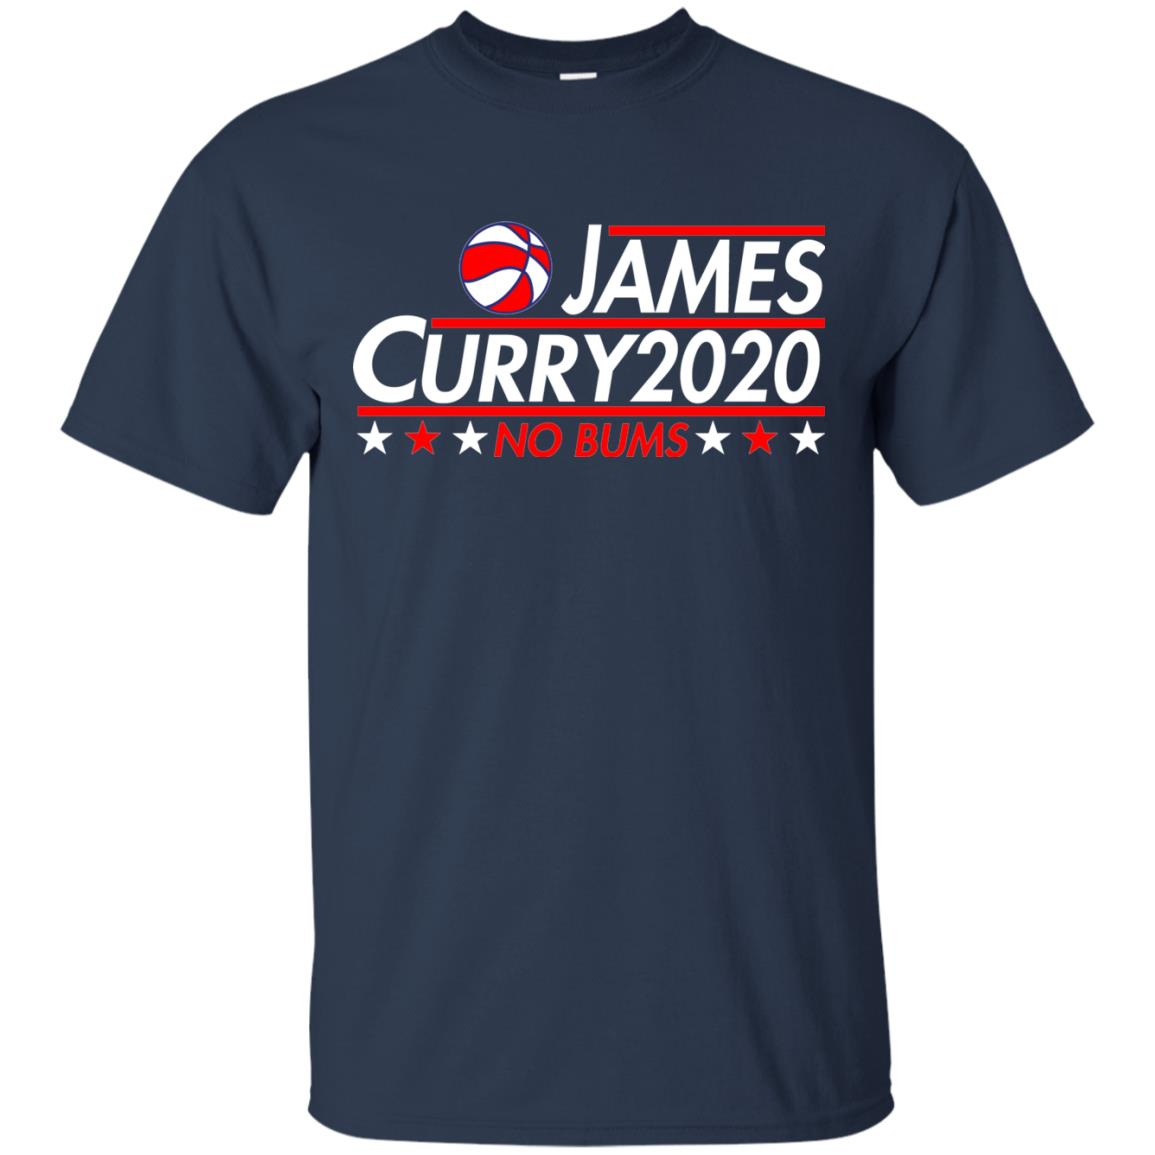 image 2167 - James Curry 2020 shirt No Bums: James & Curry for President